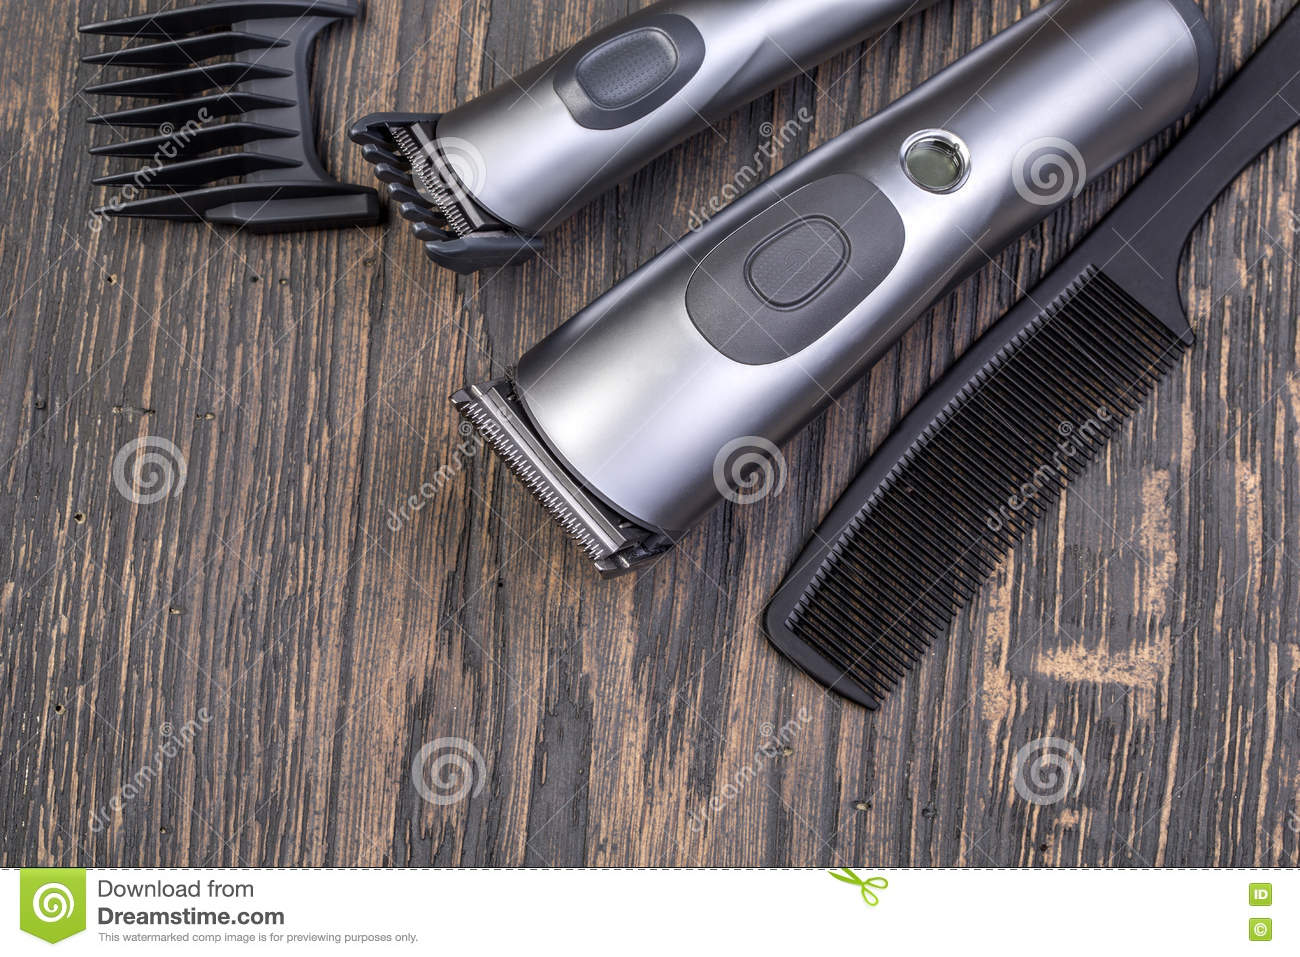 Setting with hair clipper and comb